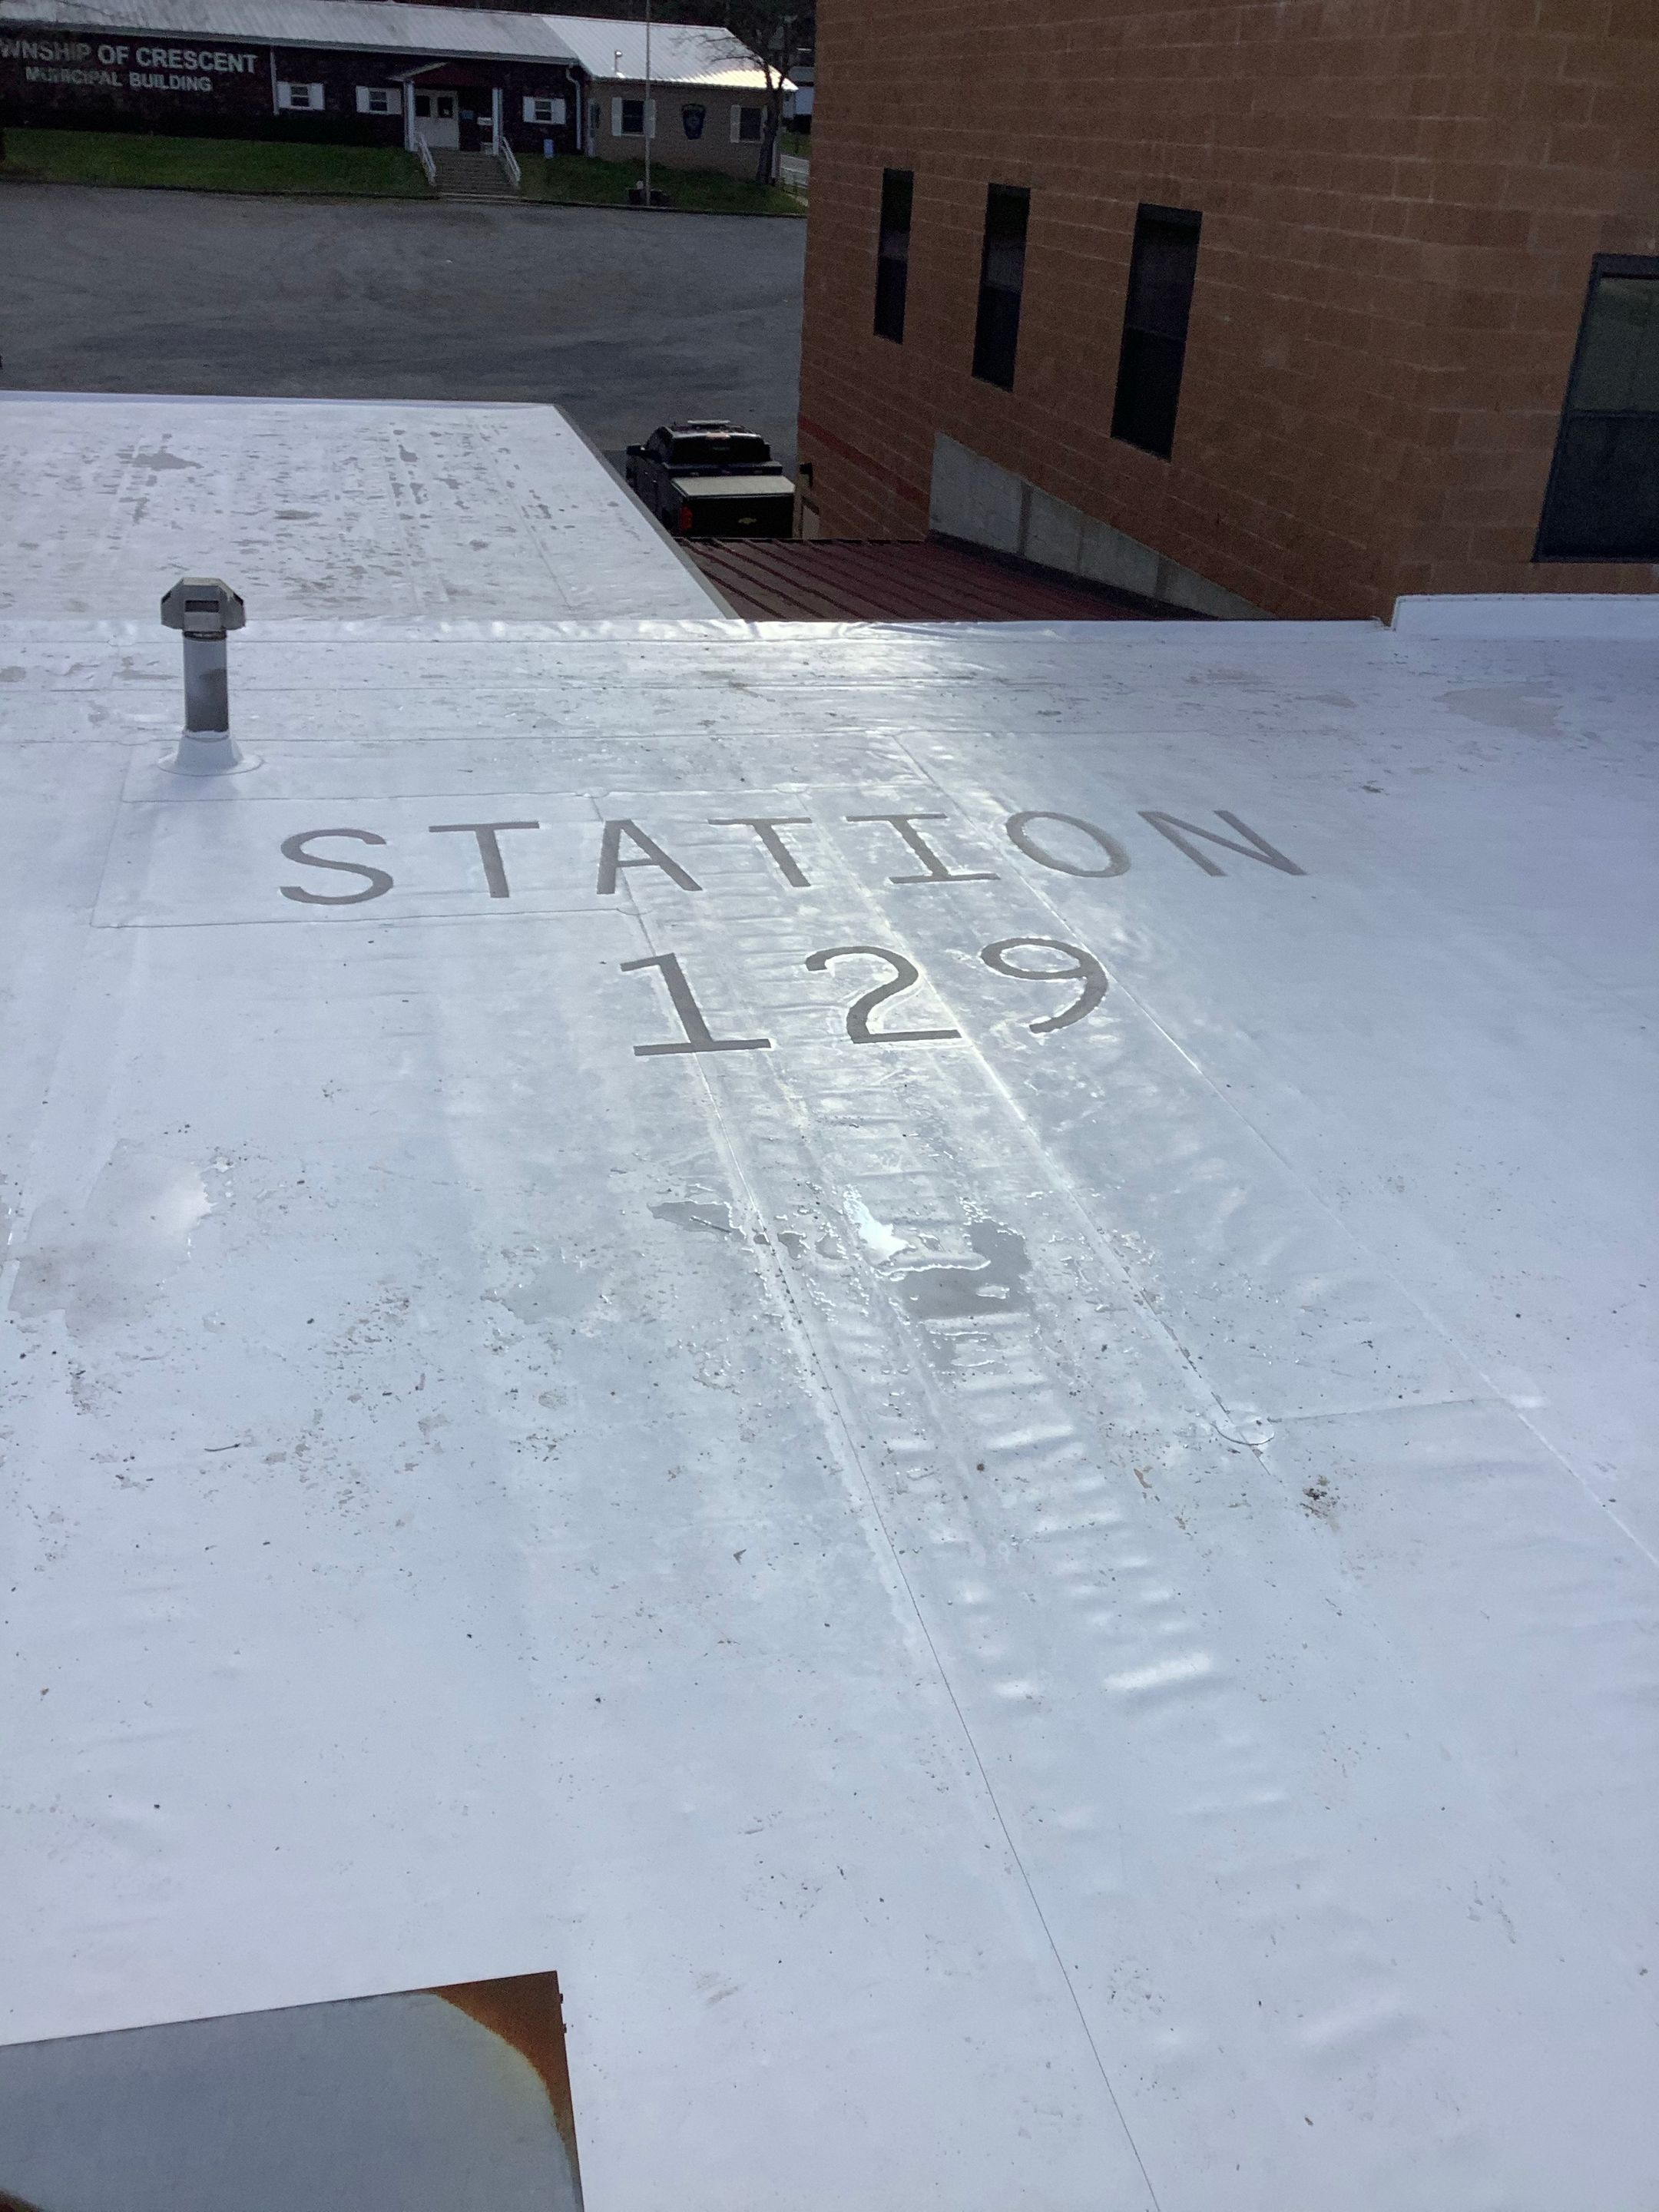 a recently installed commercial roof for fire house station 129in crescent township